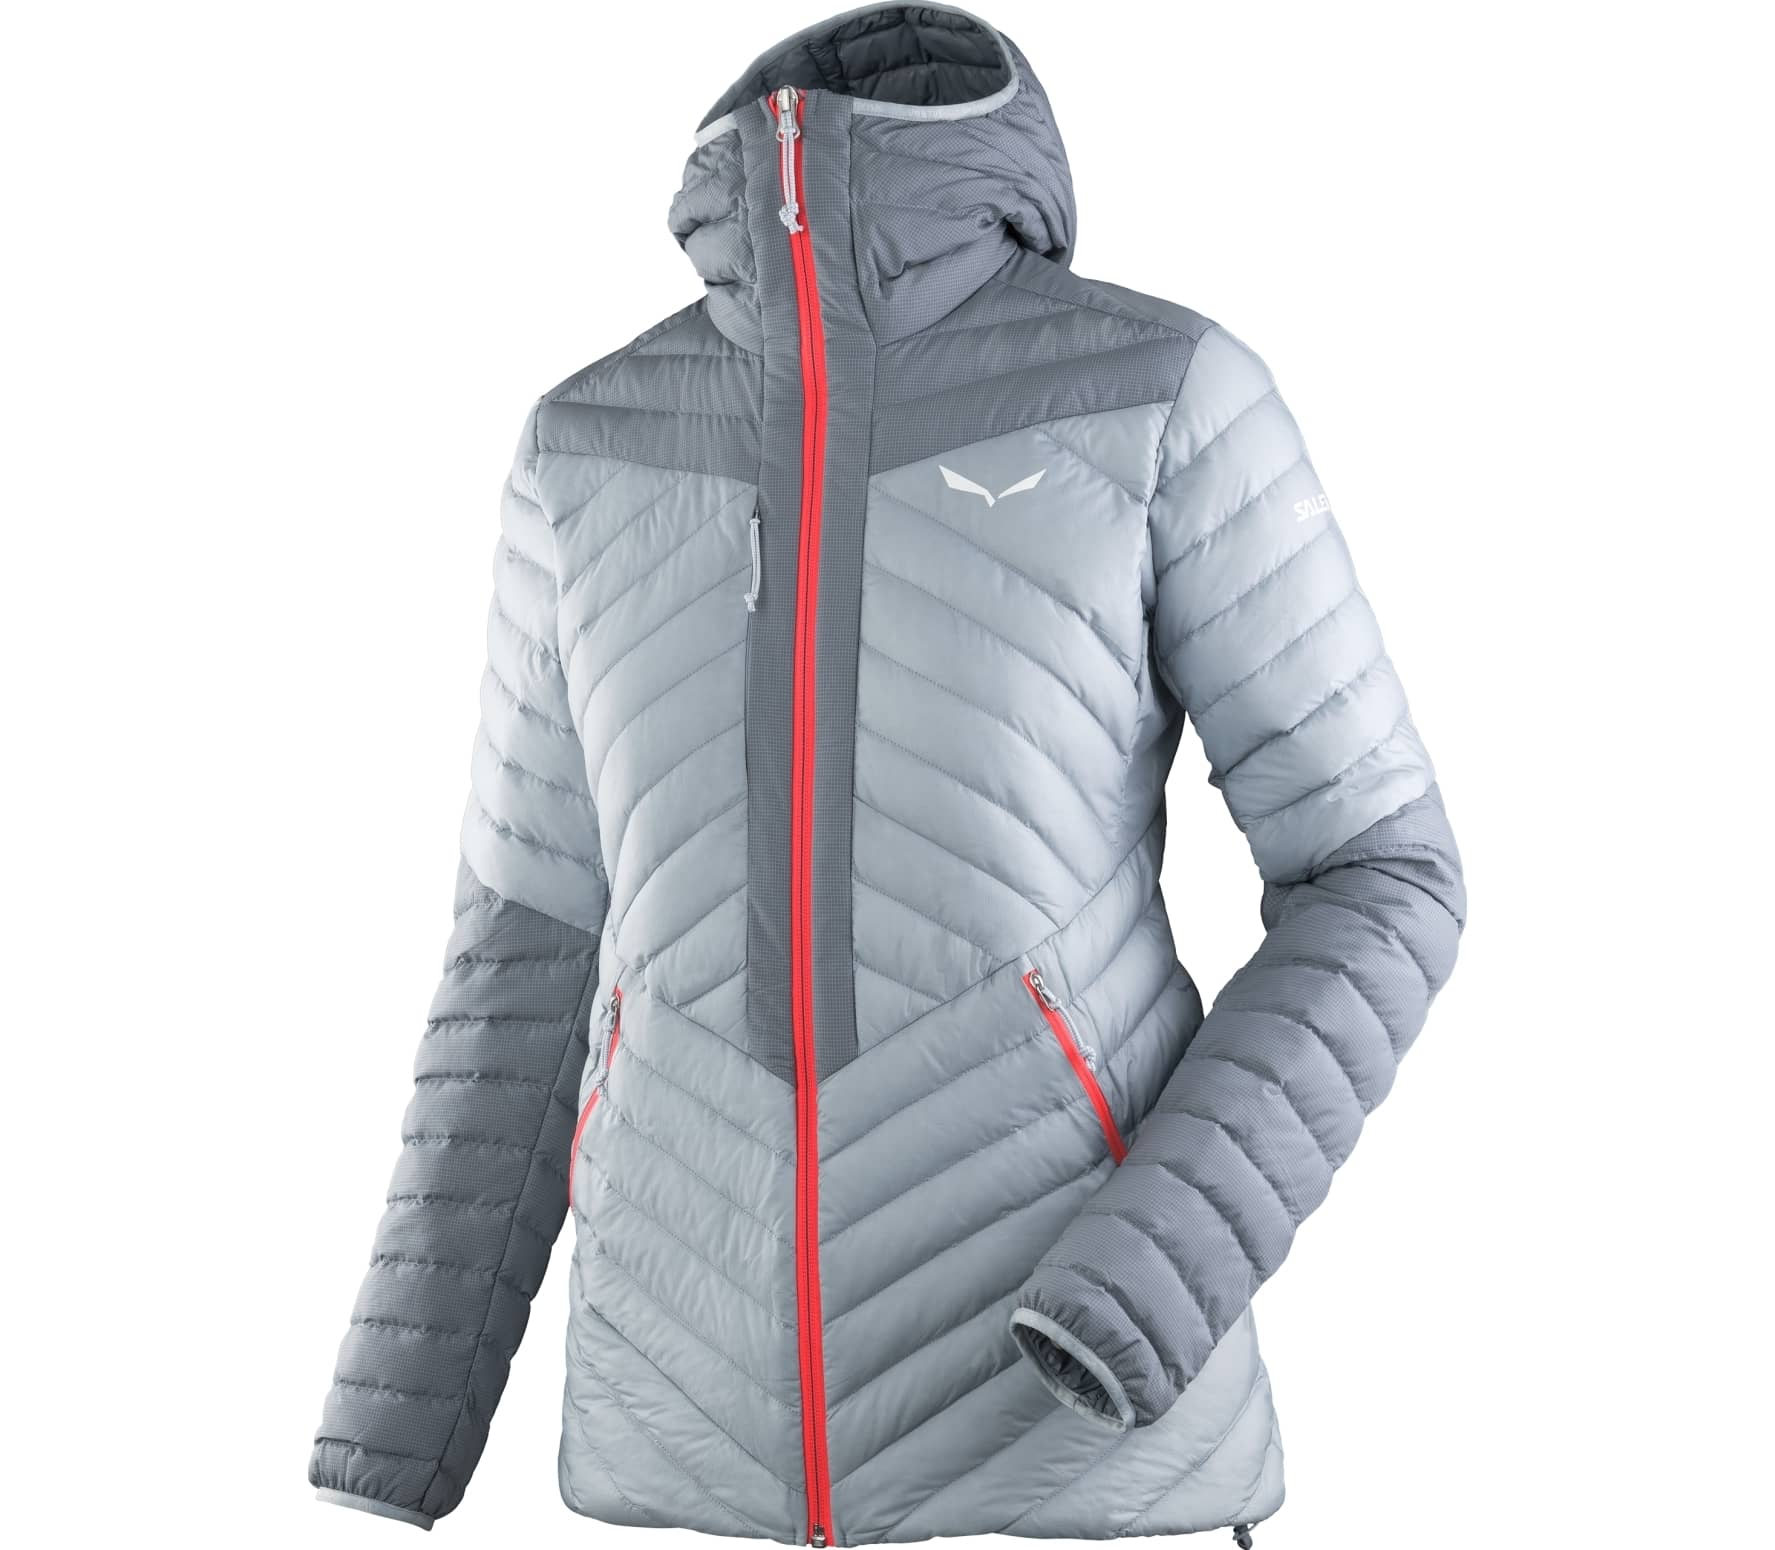 Salewa - Ortles Light 2 women's down jacket (grey/red) - XS (34)